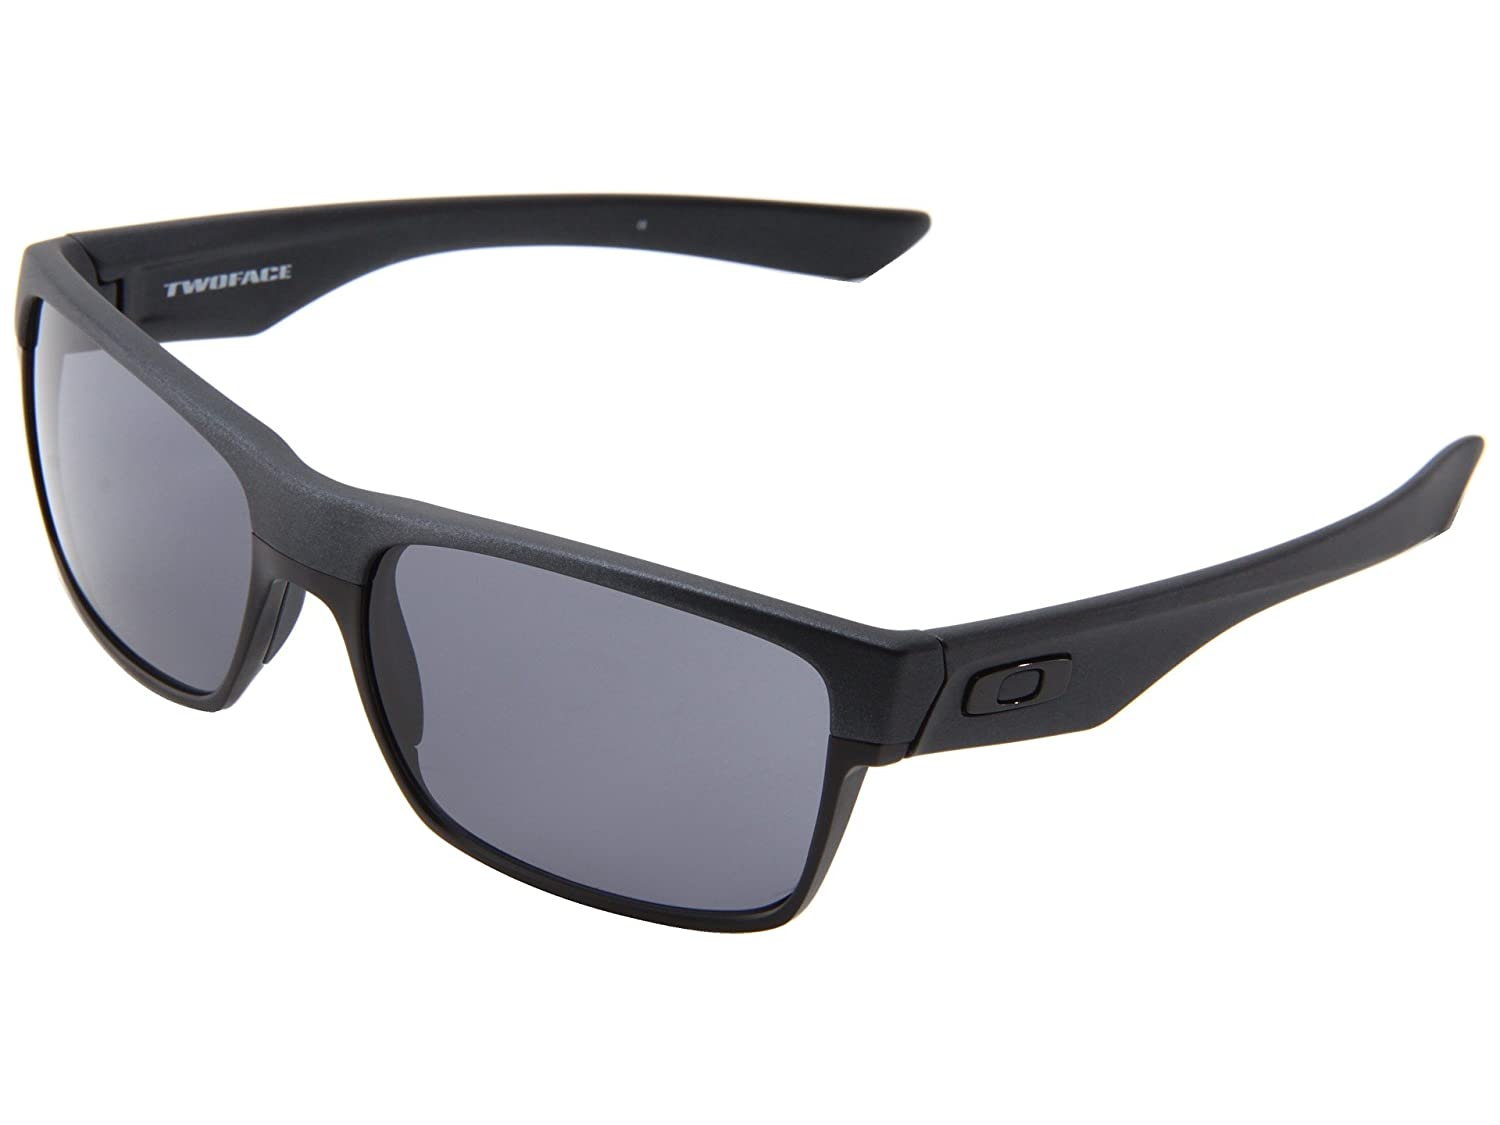 fb1c6559e6f Amazon.com  Oakley Twoface Sunglasses Steel Grey with Grey Lens + Sticker   Shoes